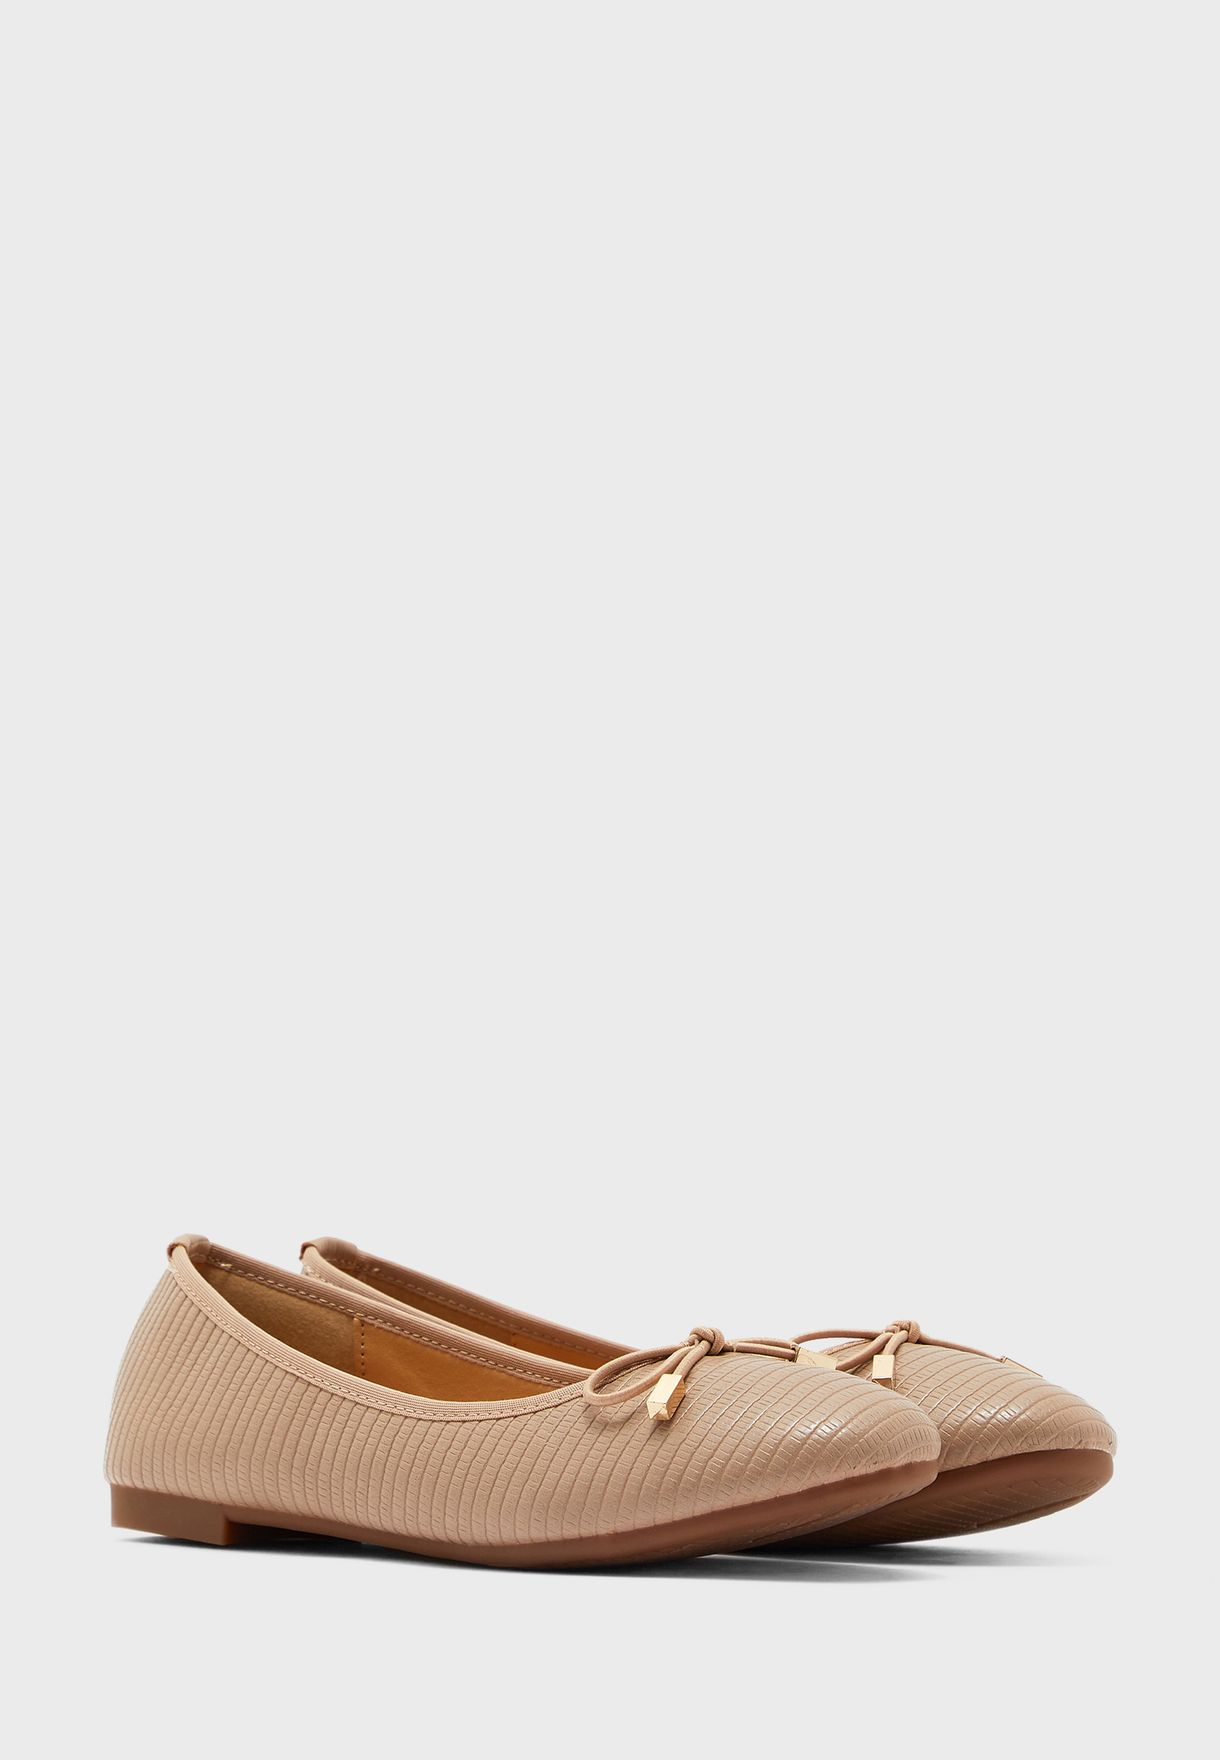 Textured Round Toe Shoe With Bow